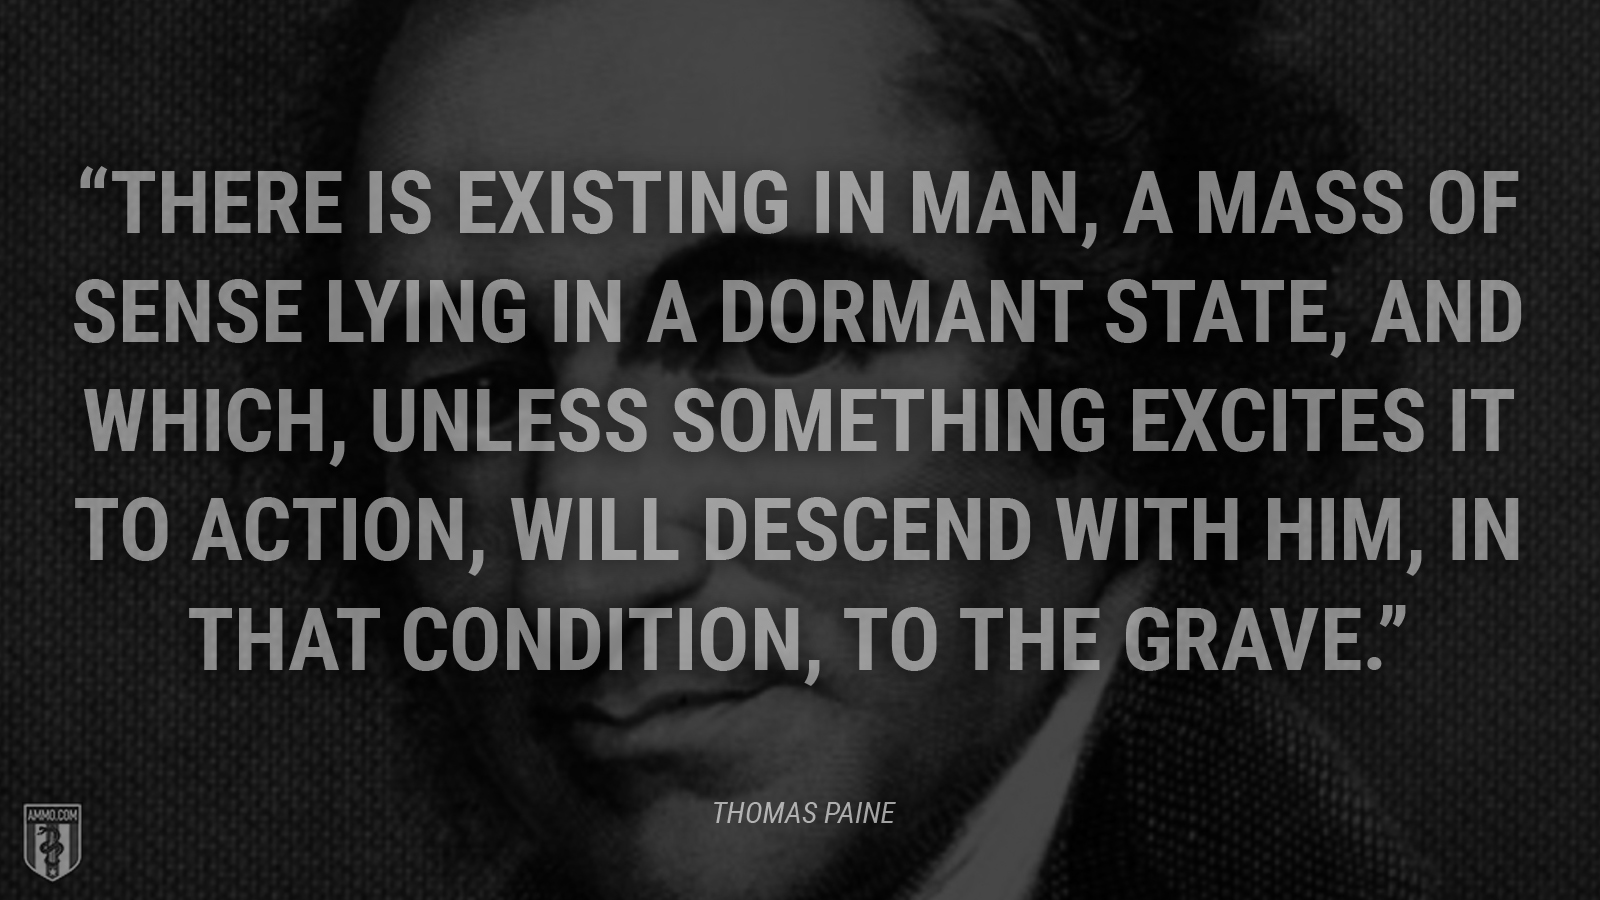 """There is existing in man, a mass of sense lying in a dormant state, and which, unless something excites it to action, will descend with him, in that condition, to the grave."" - Thomas Paine"